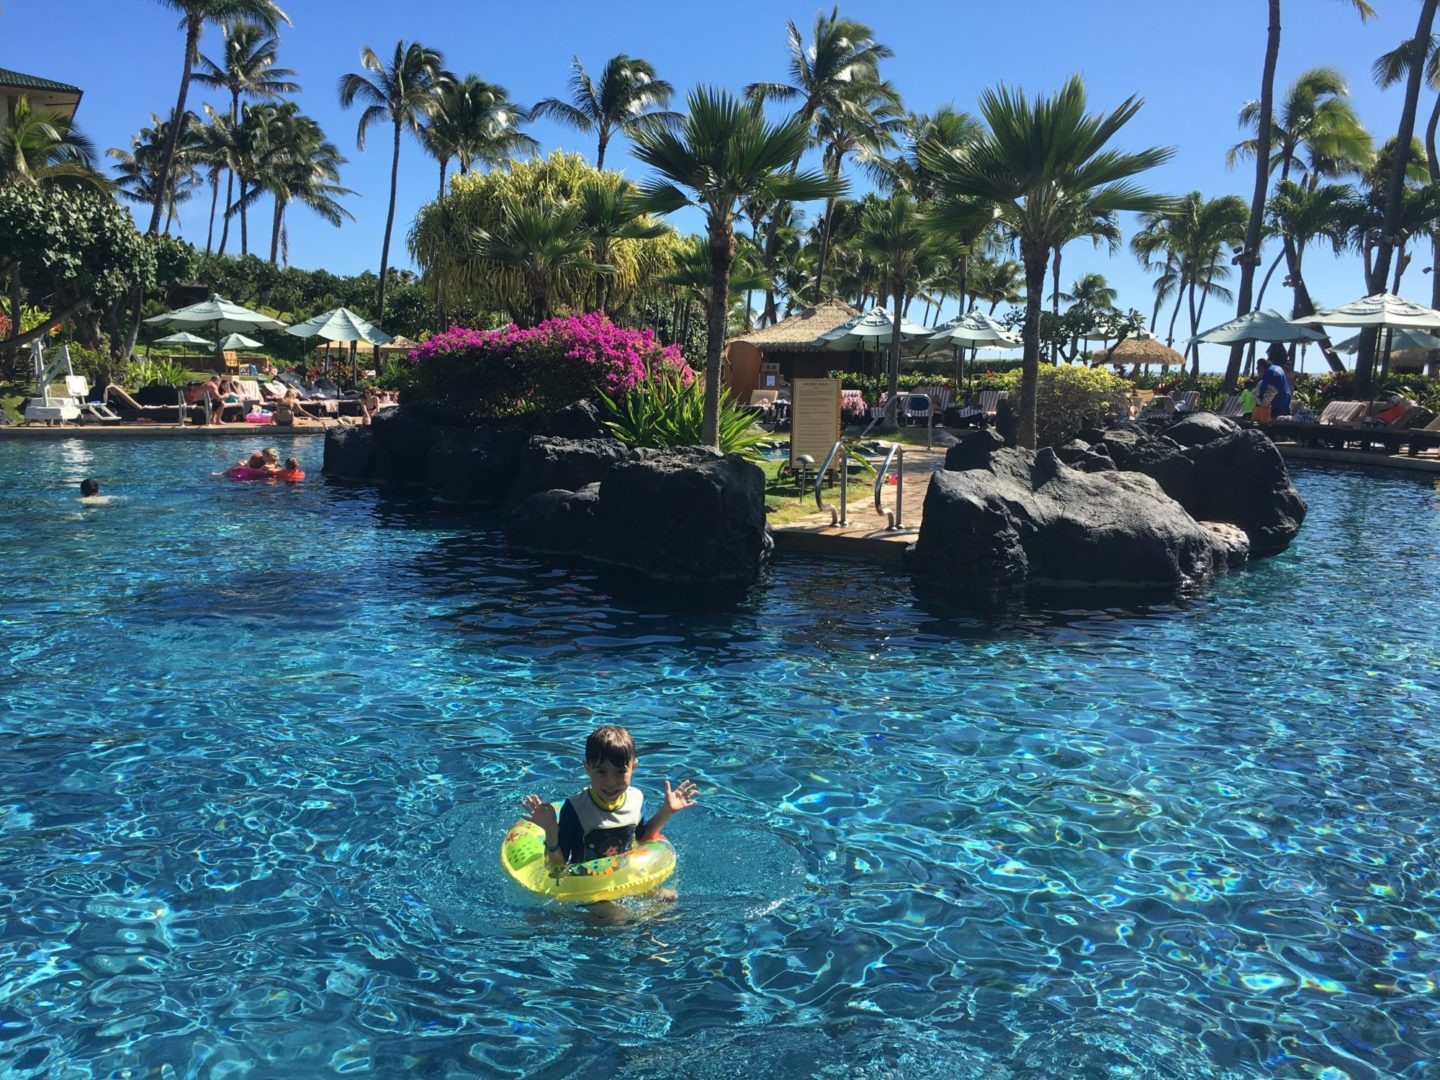 5 Reasons the Grand Hyatt Kauai is Great For Families